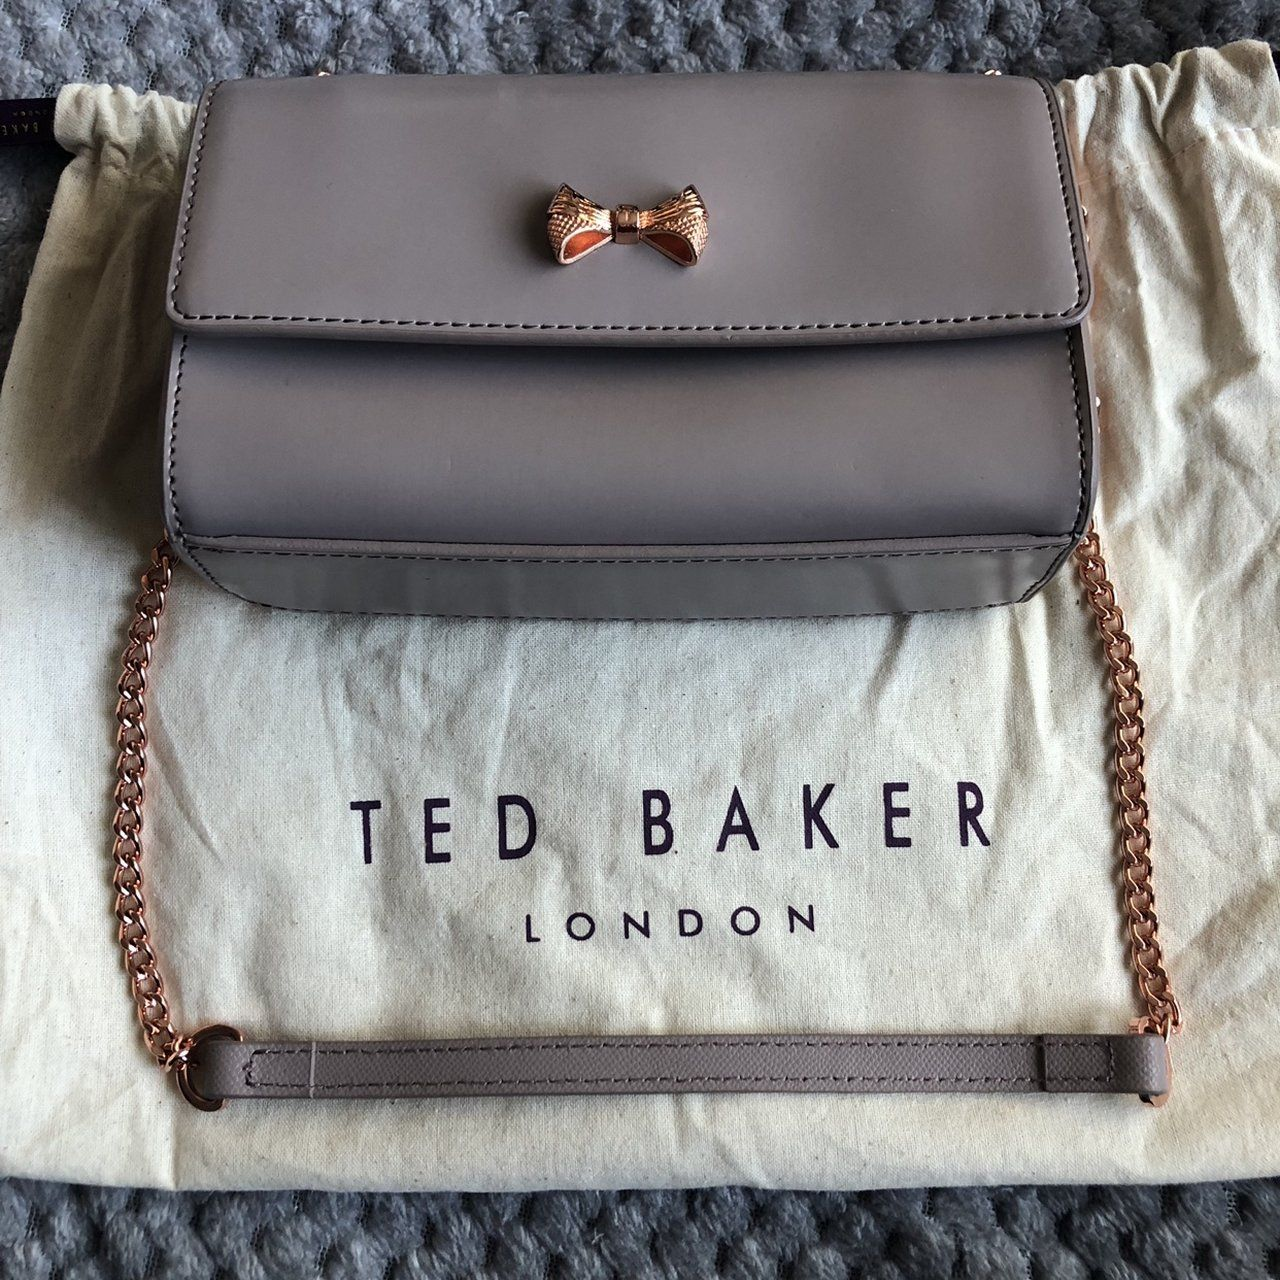 aceb33826e81 Genuine Ted Baker bag with rose gold strap. Brand new, never - Depop ...